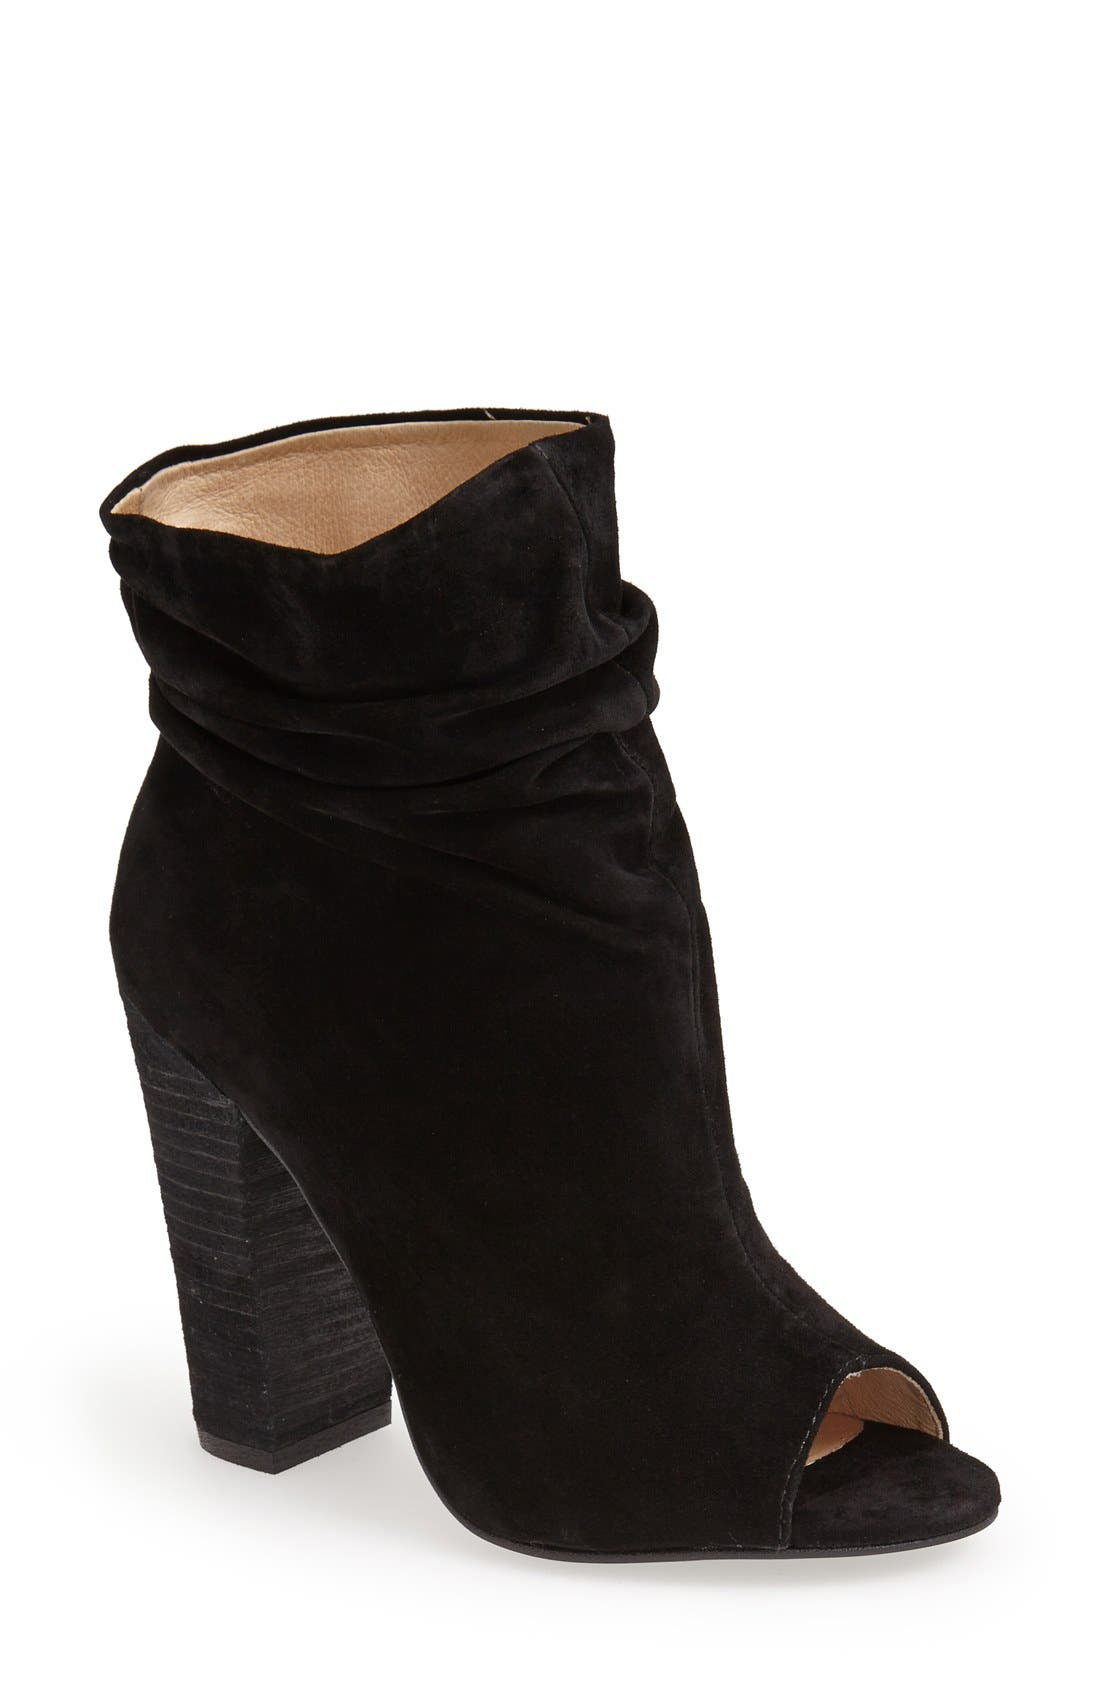 'Laurel' Peep Toe Bootie,                         Main,                         color, Black